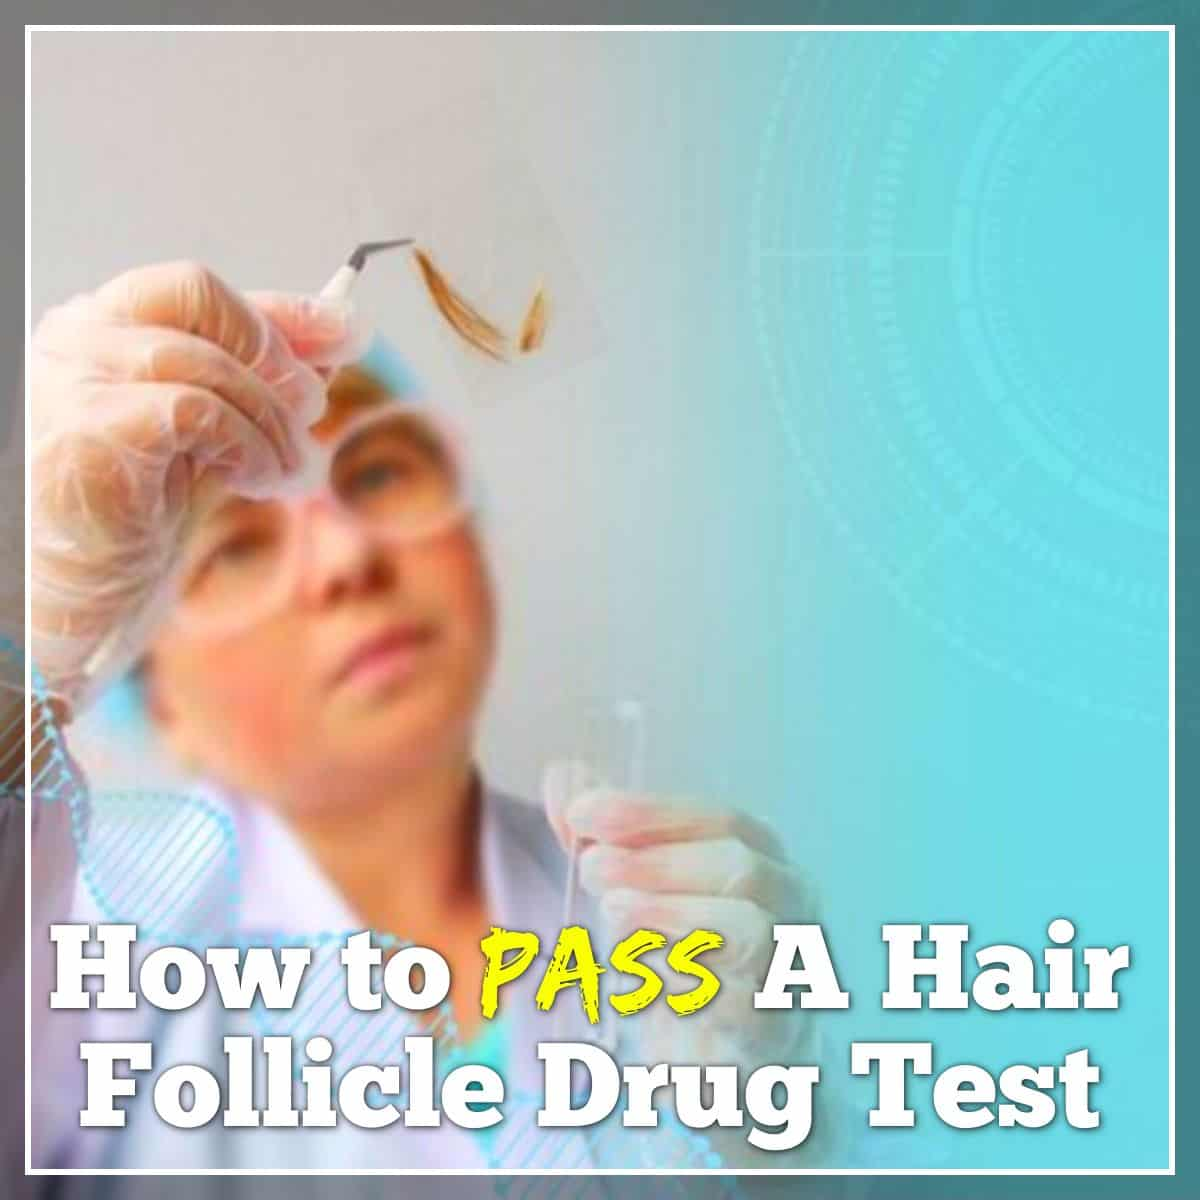 How To Pass A Hair Follicle Drug Tests